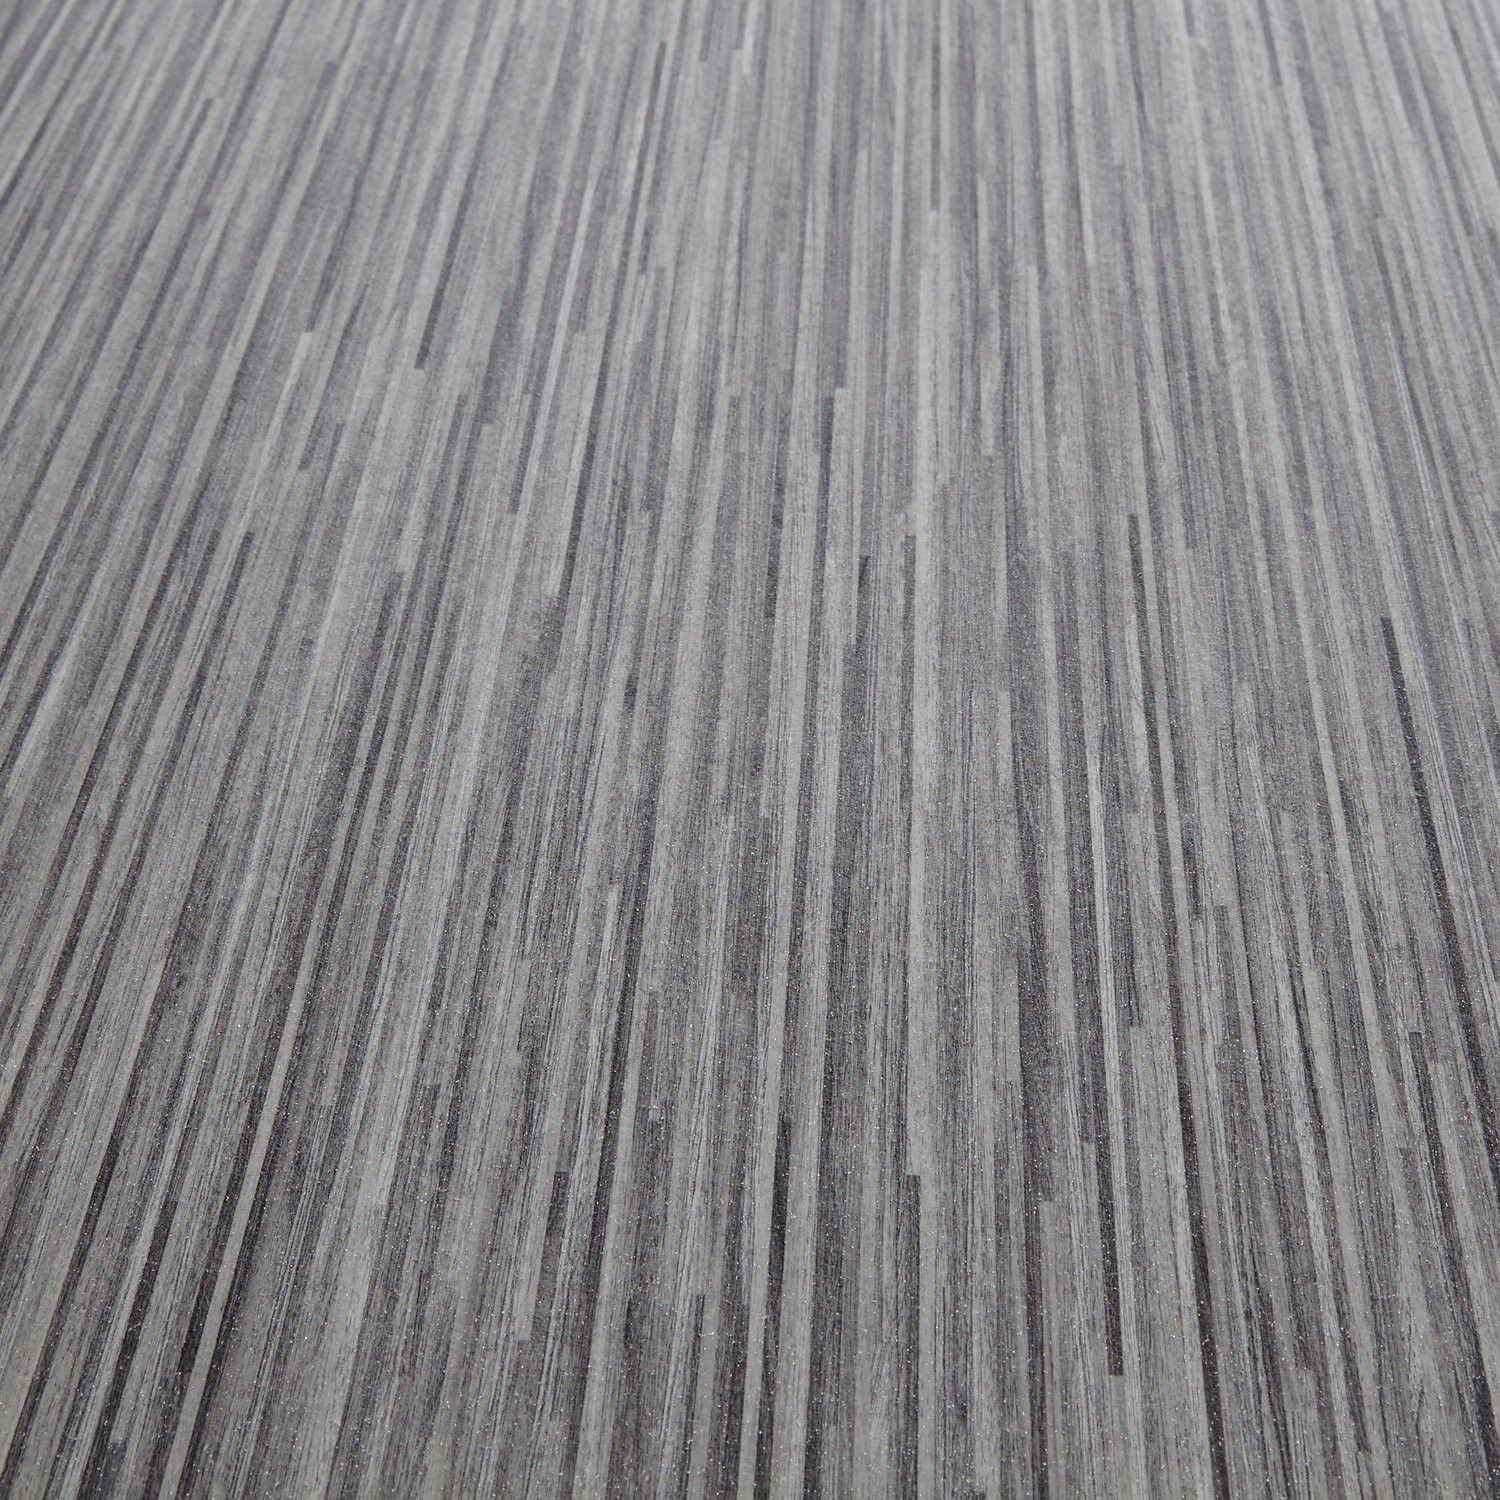 Grey linoleum flooring gurus floor for Grey linoleum flooring